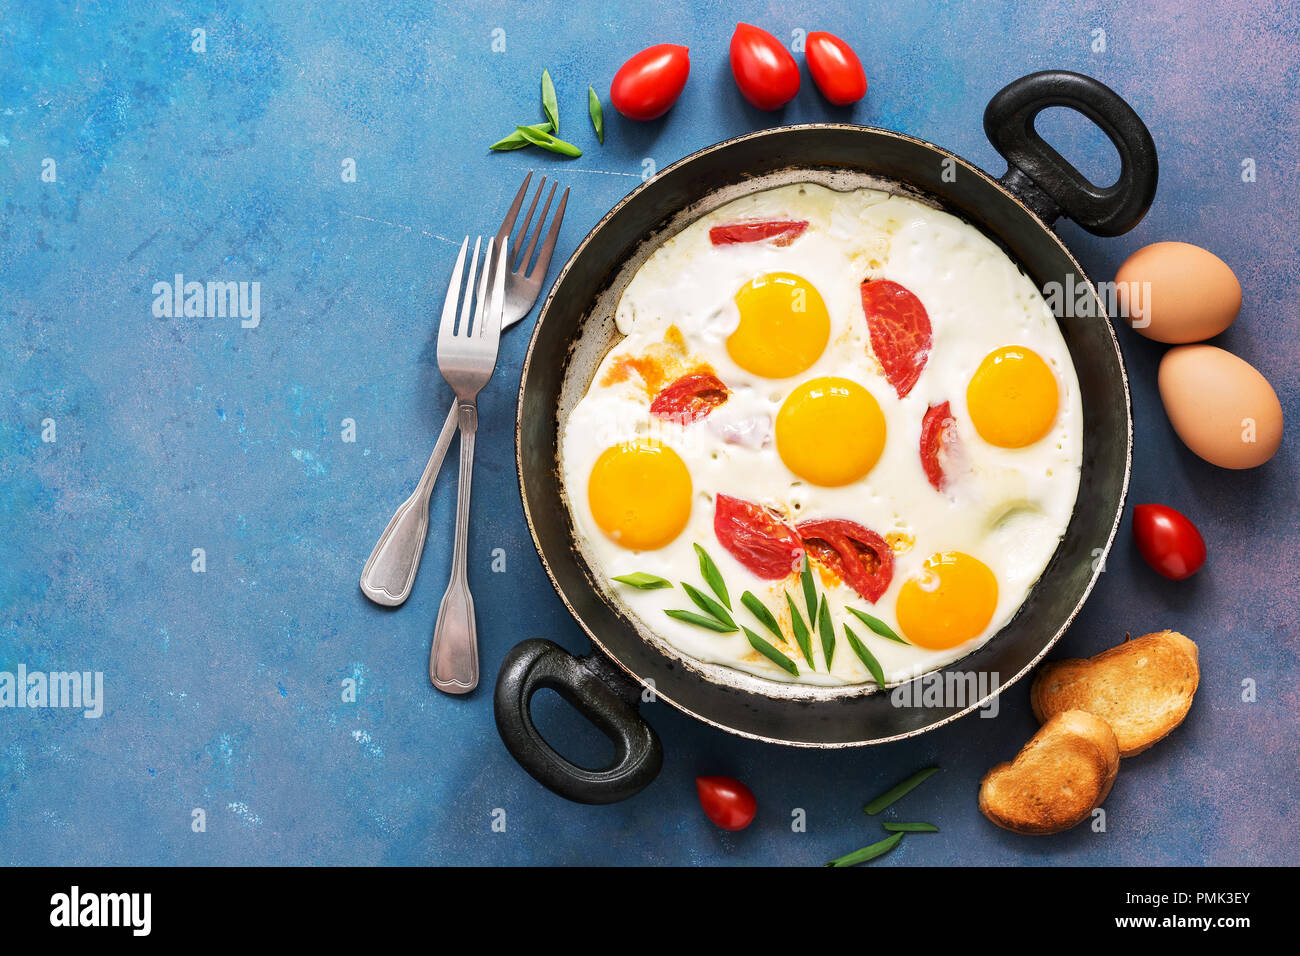 Breakfast fried eggs with tomatoes, served in a pan on a blue background. Top view, space for text - Stock Image